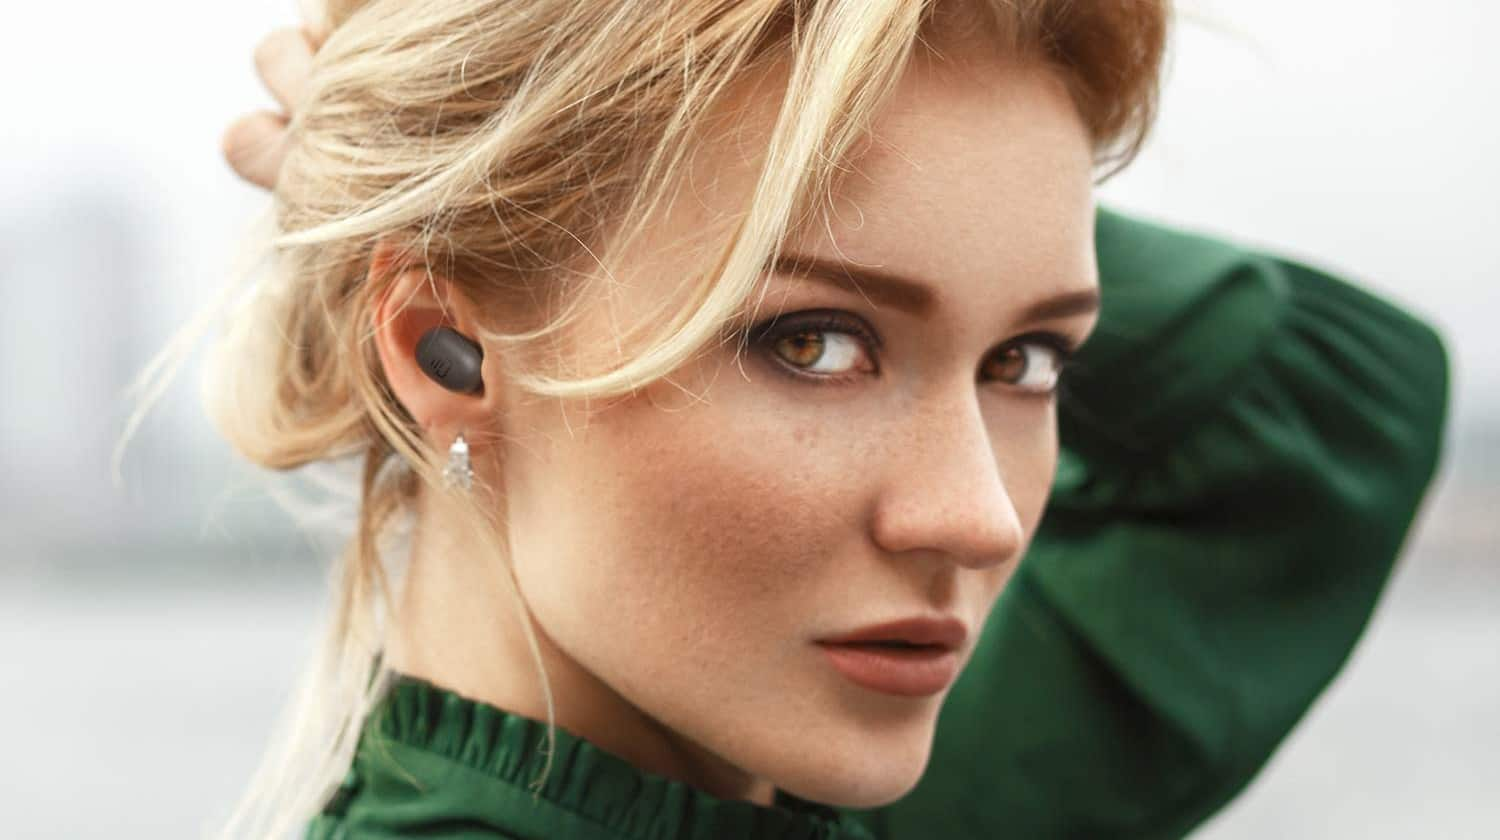 Featured   Dudios True Wireless Earbuds, Free Mini Bluetooth 5.0   Mr Noobie Reviews One of the Best Bluetooth Earbuds You Can Buy On Amazon For Cheap